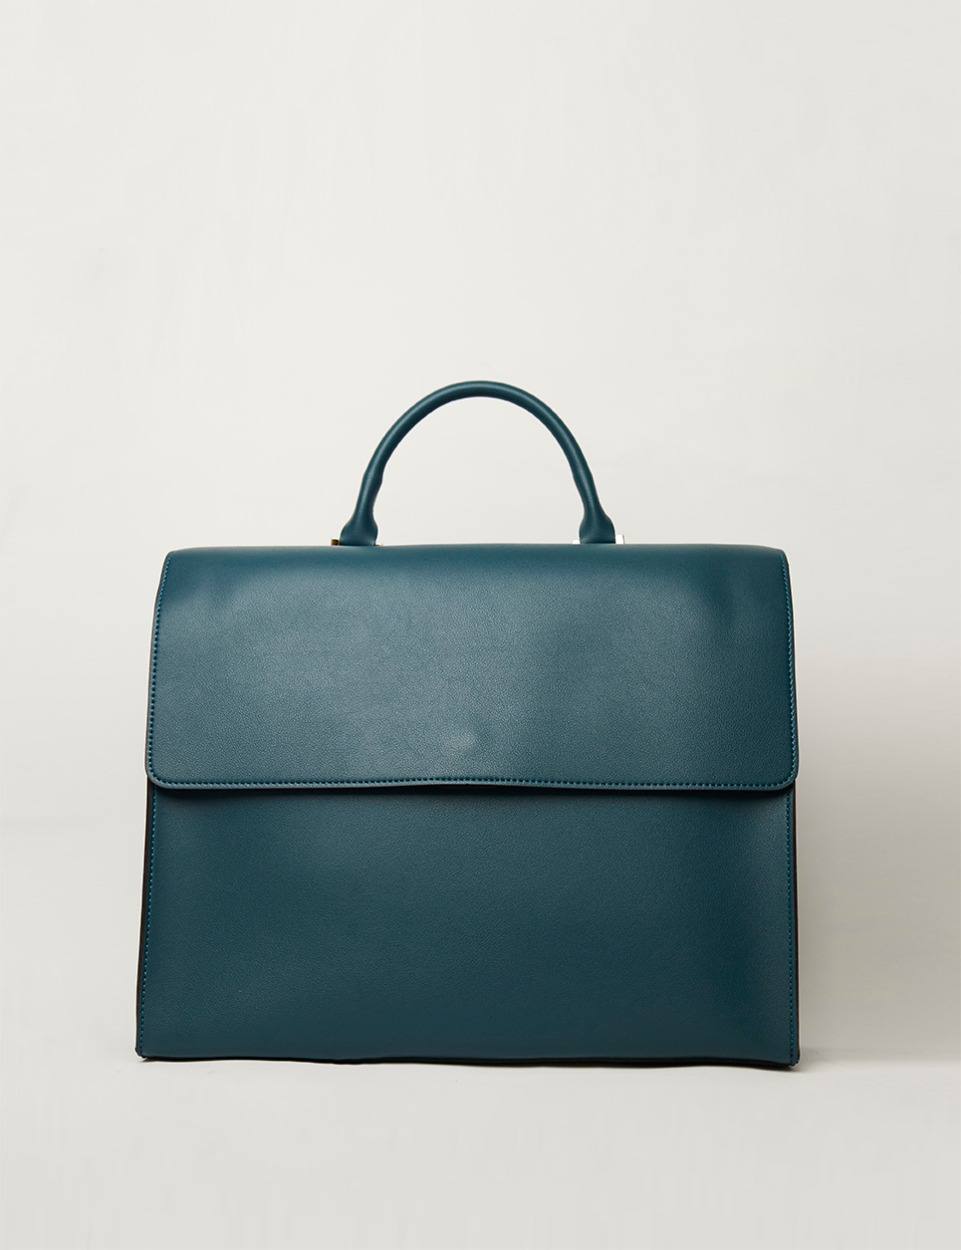 RB dulles bag (deep teal green)